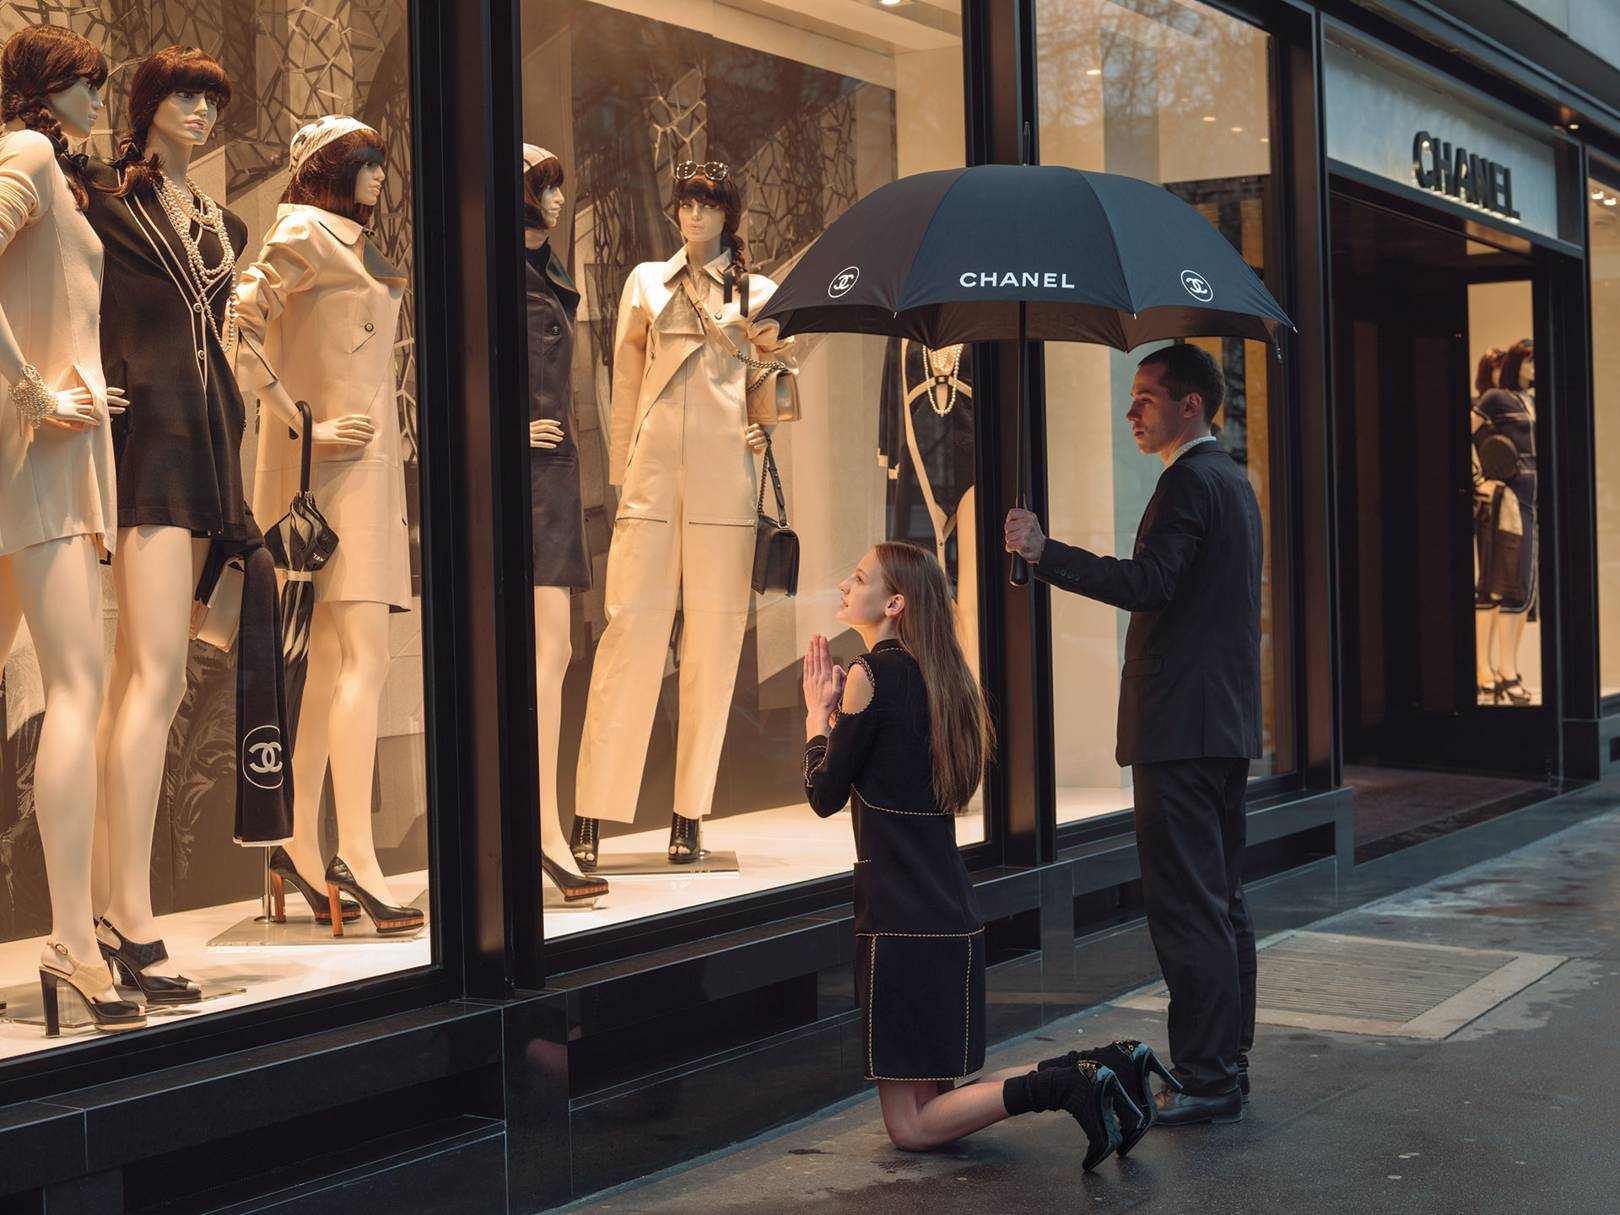 c231b9188076 Chanel Launches E-Commerce In The UK | British Vogue